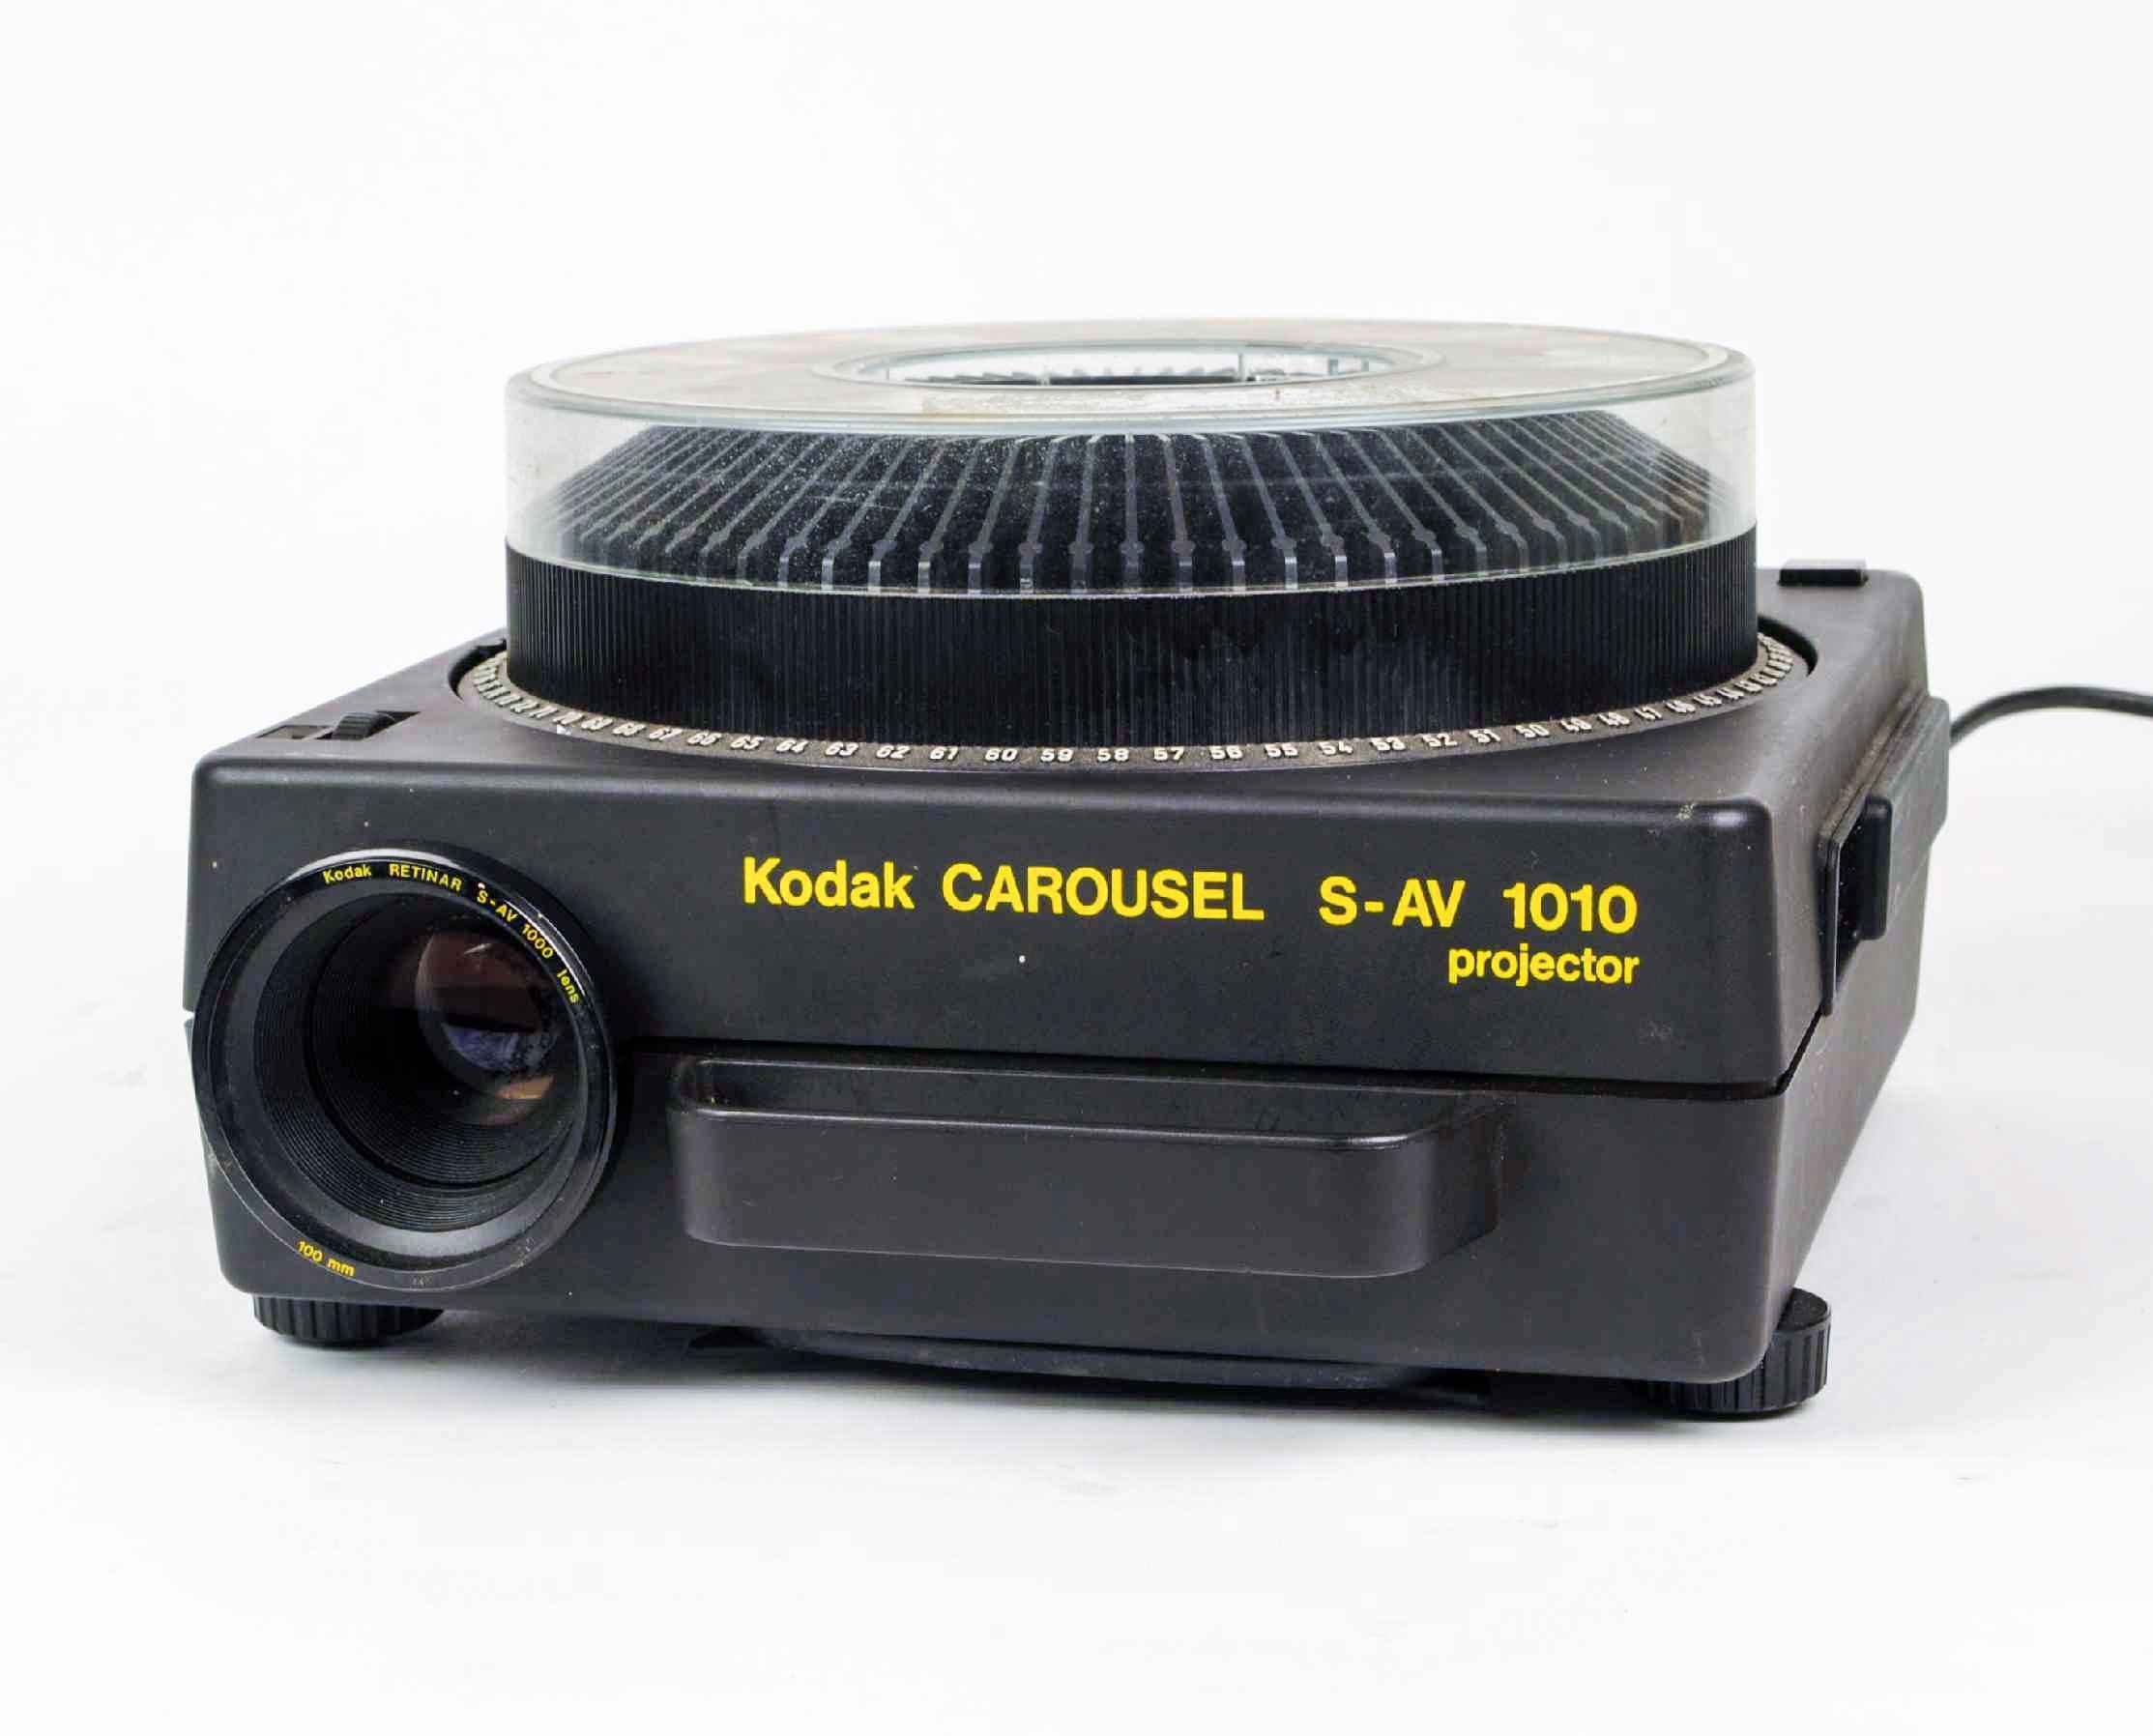 kodak carousel s av 1010 slide projectors spare parts and rh van eck net Kodak Slide Projector Kodak Movie Projectors